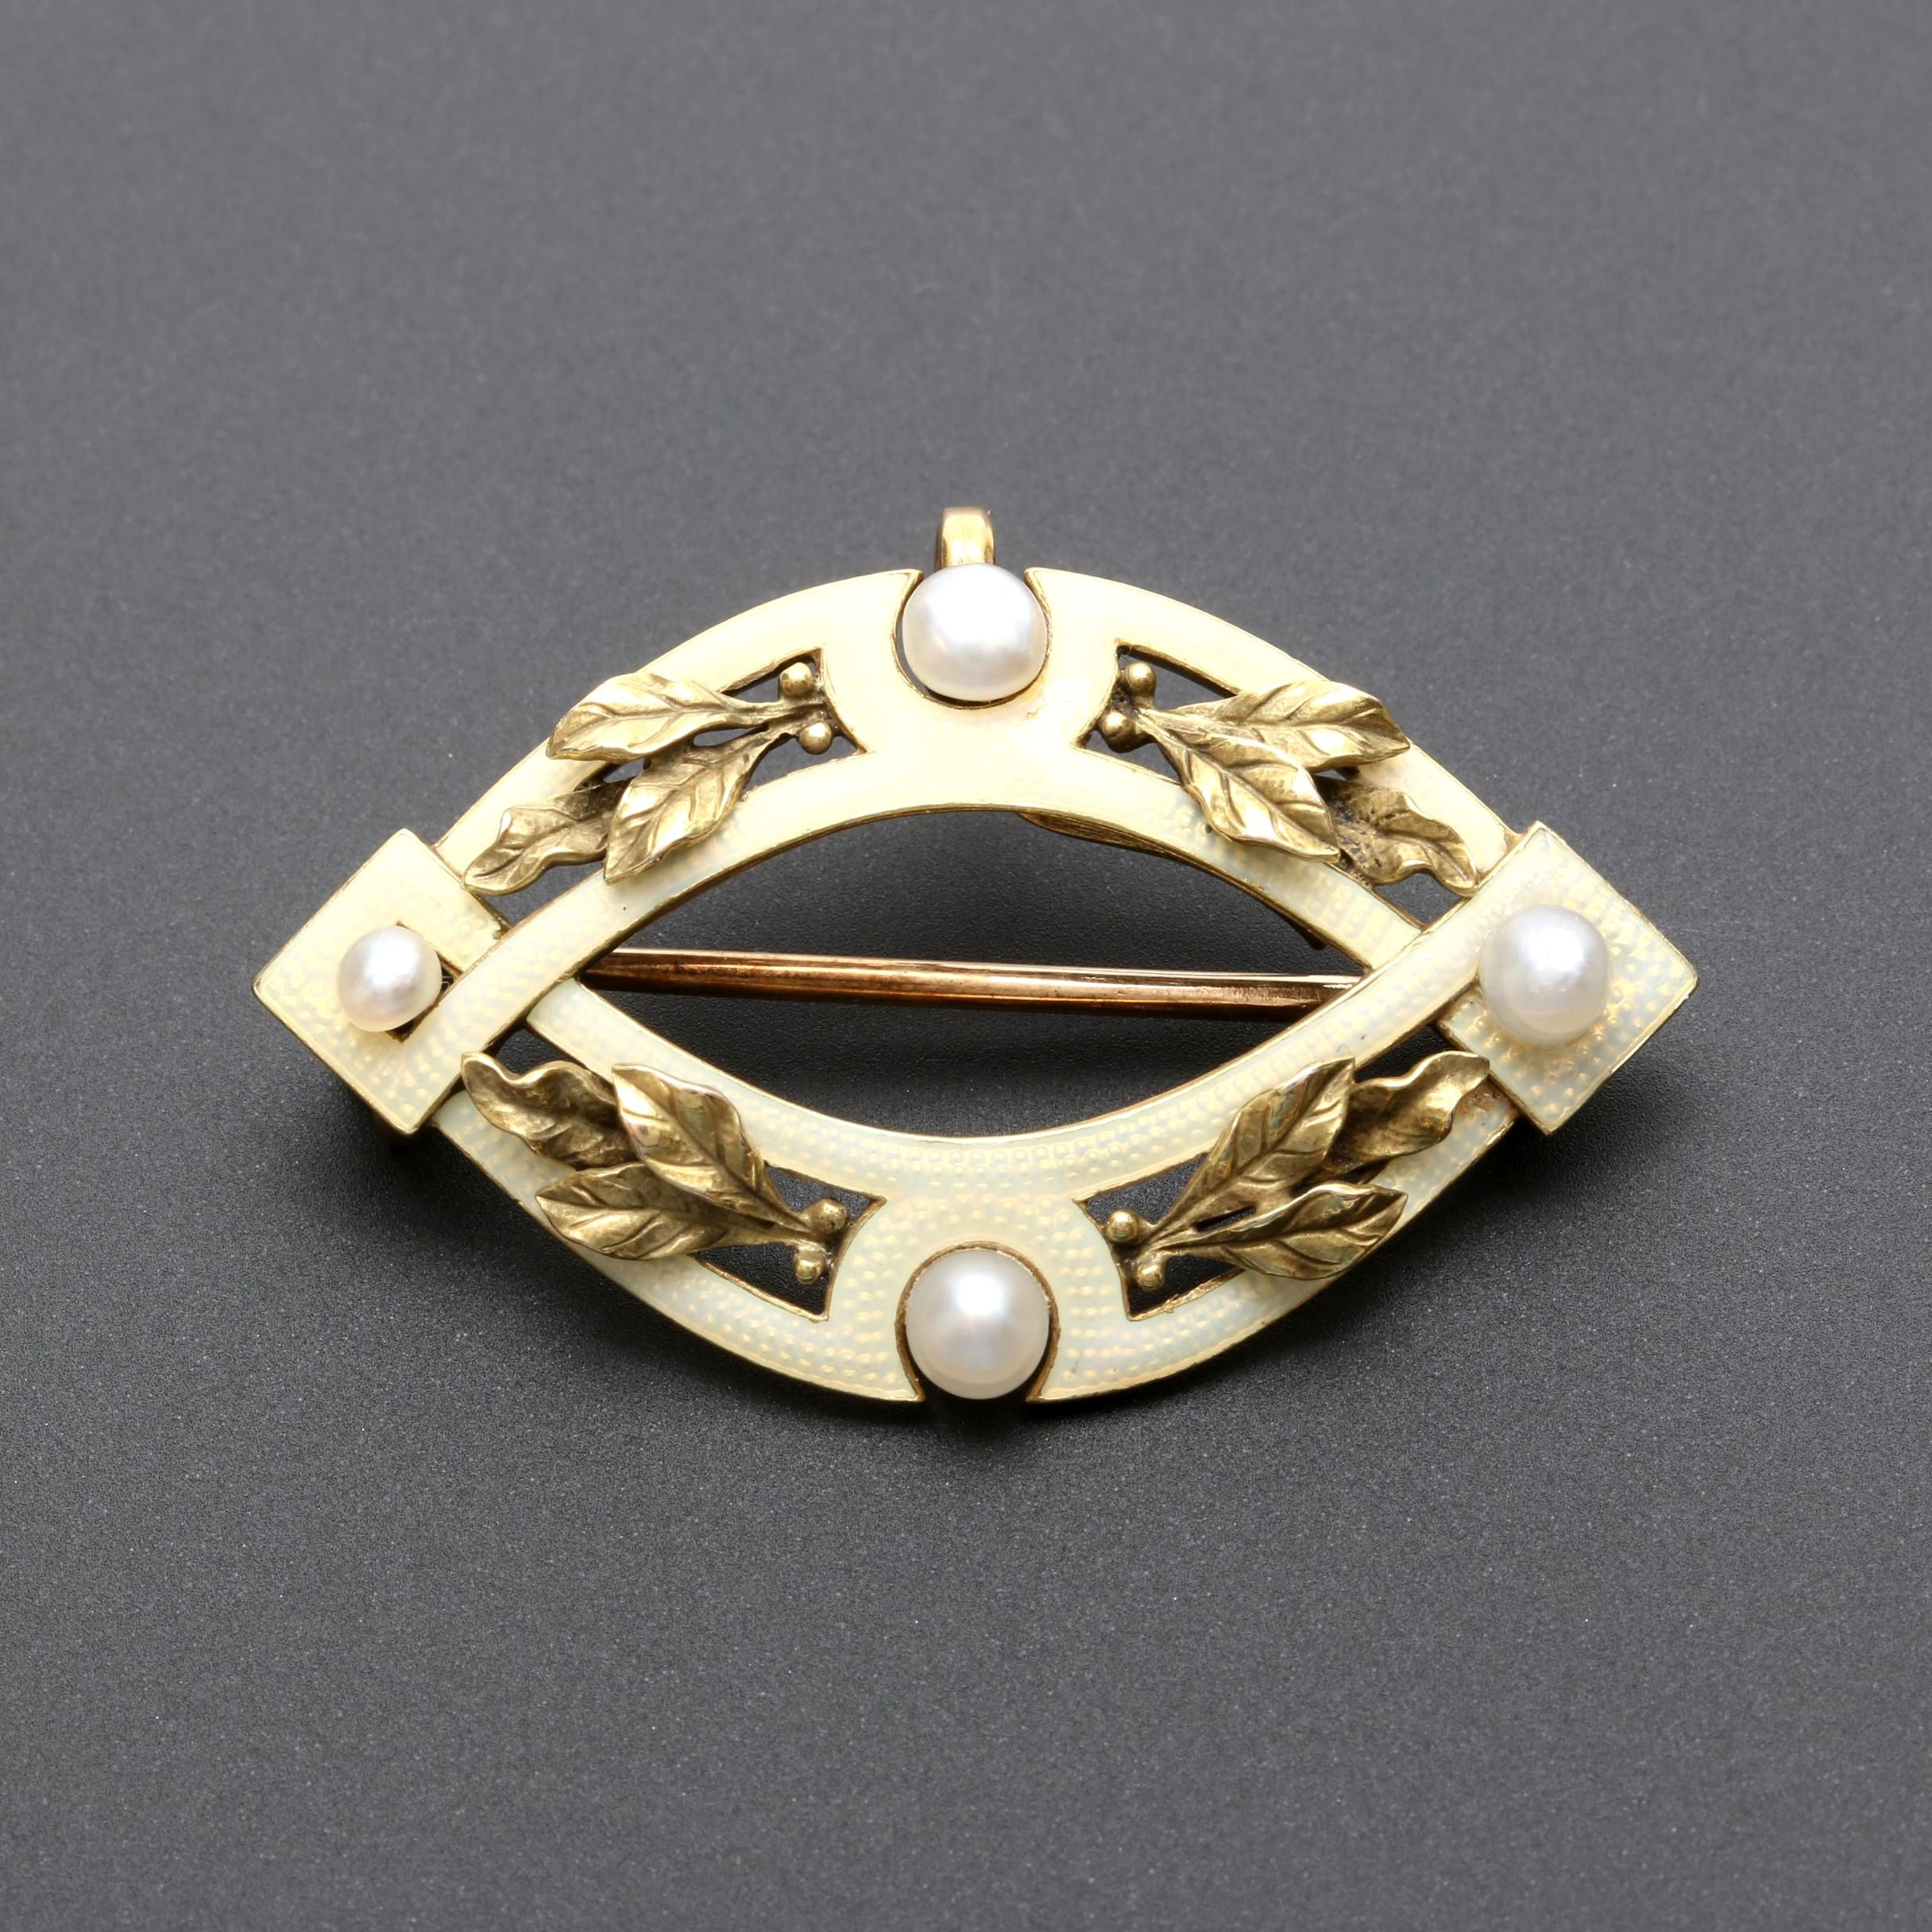 Art Nouveau 14K Yellow Gold Seed Pearl Brooch